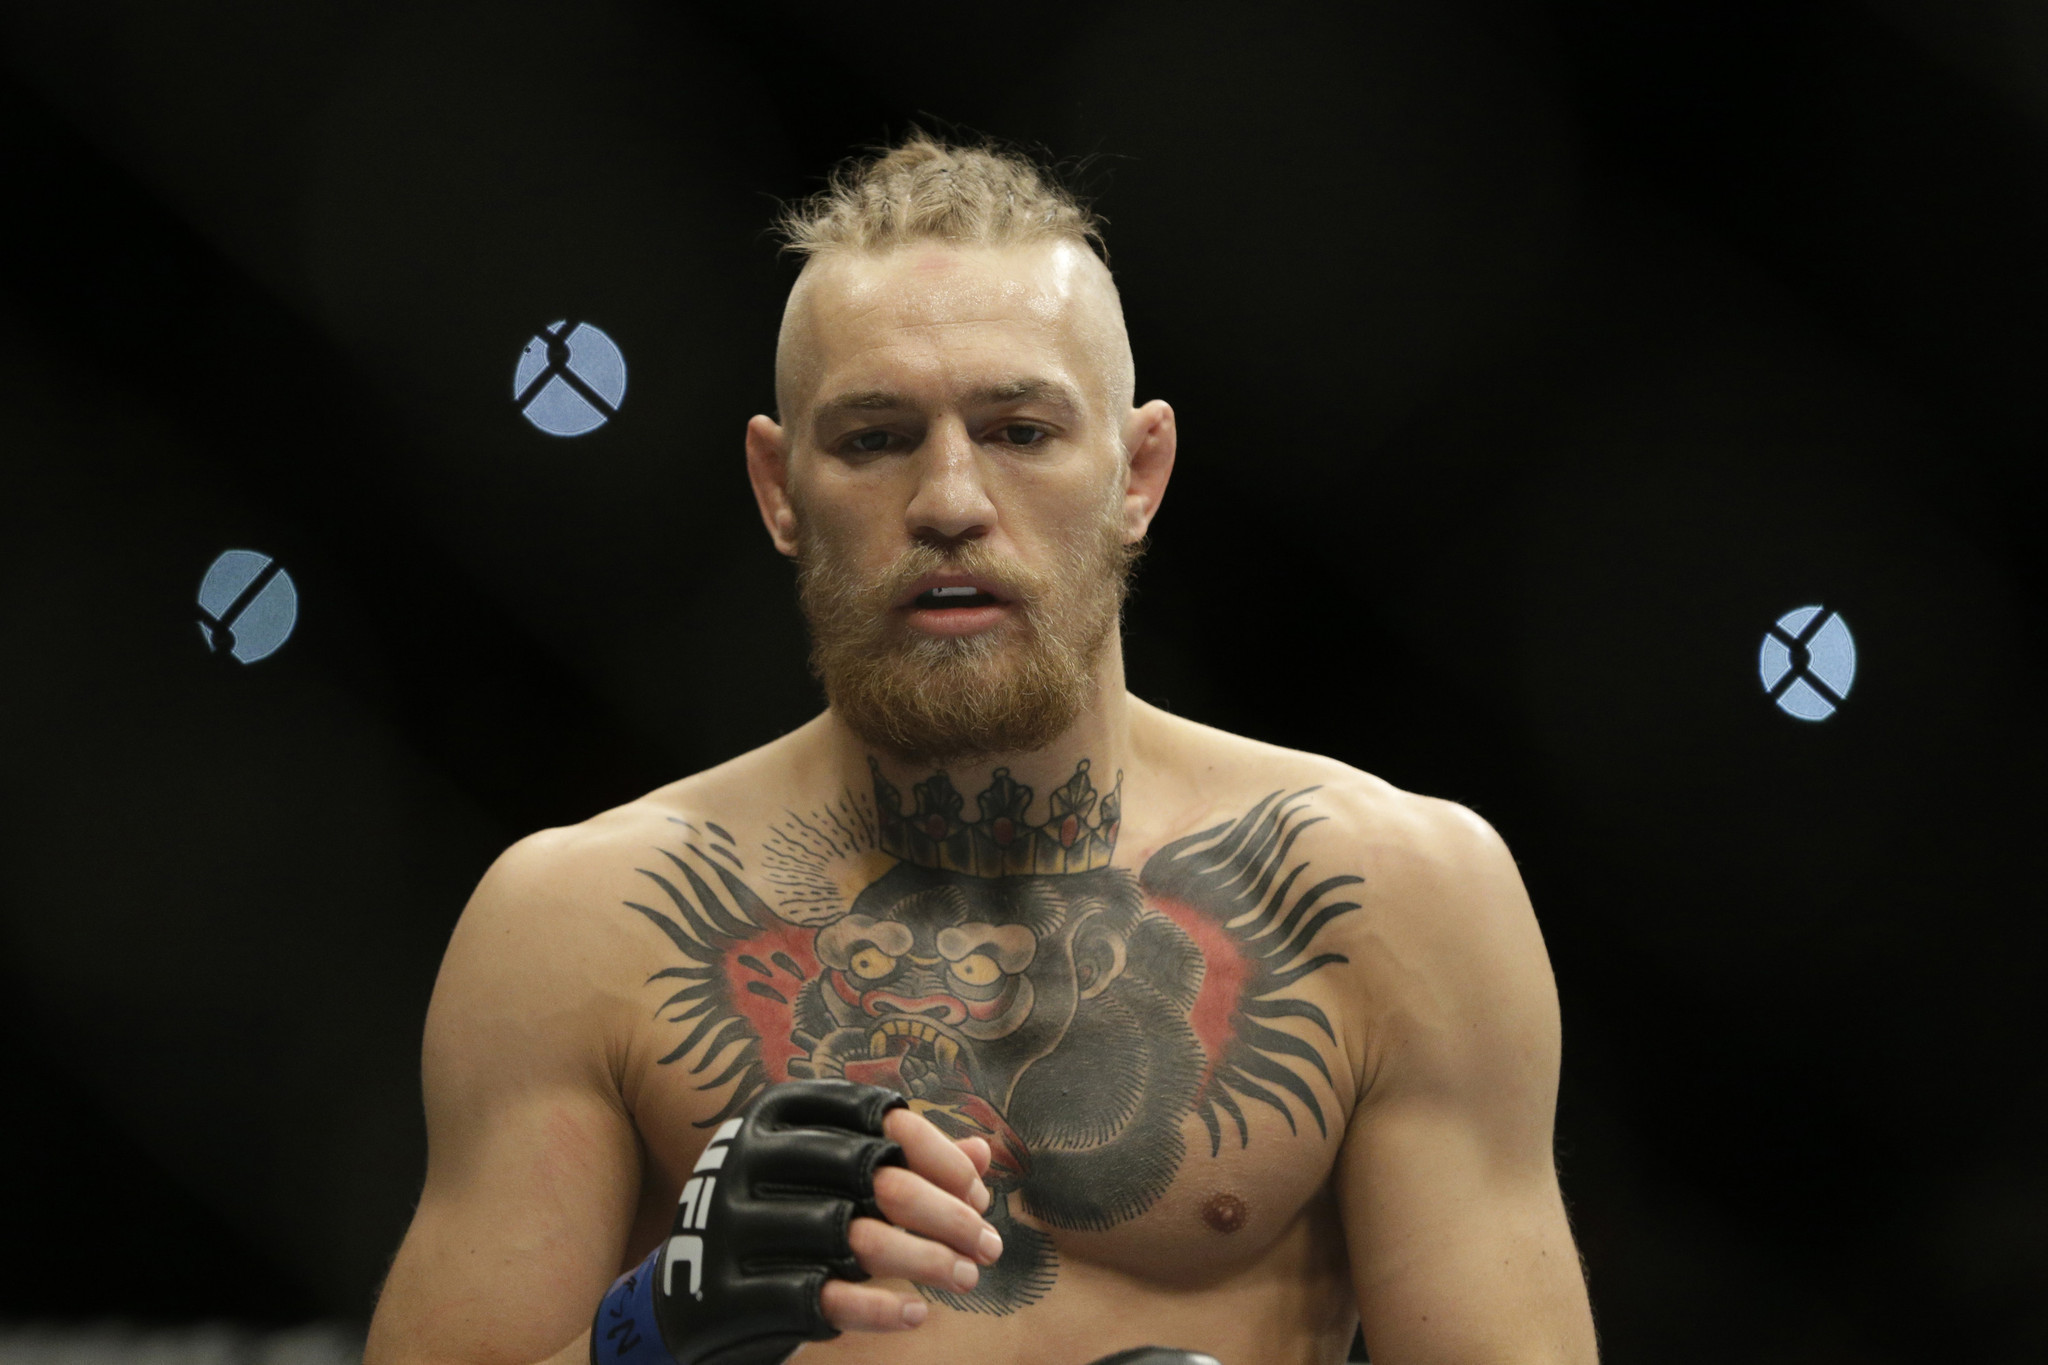 Conor Mcgregor Wallpaper Black And White: Download Ufc Live Wallpaper Gallery